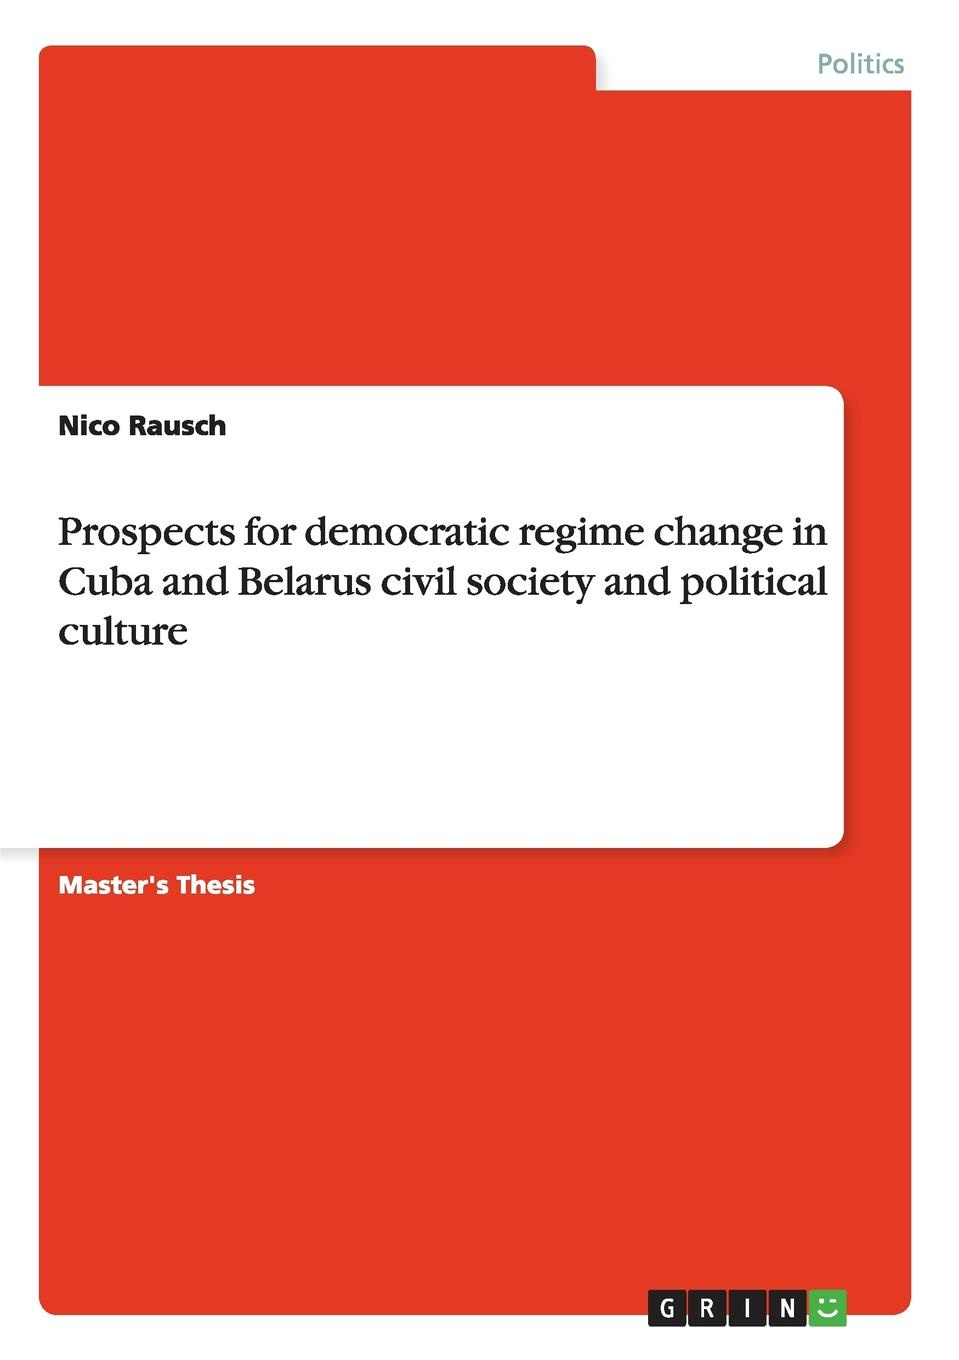 Nico Rausch Prospects for democratic regime change in Cuba and Belarus civil society and political culture